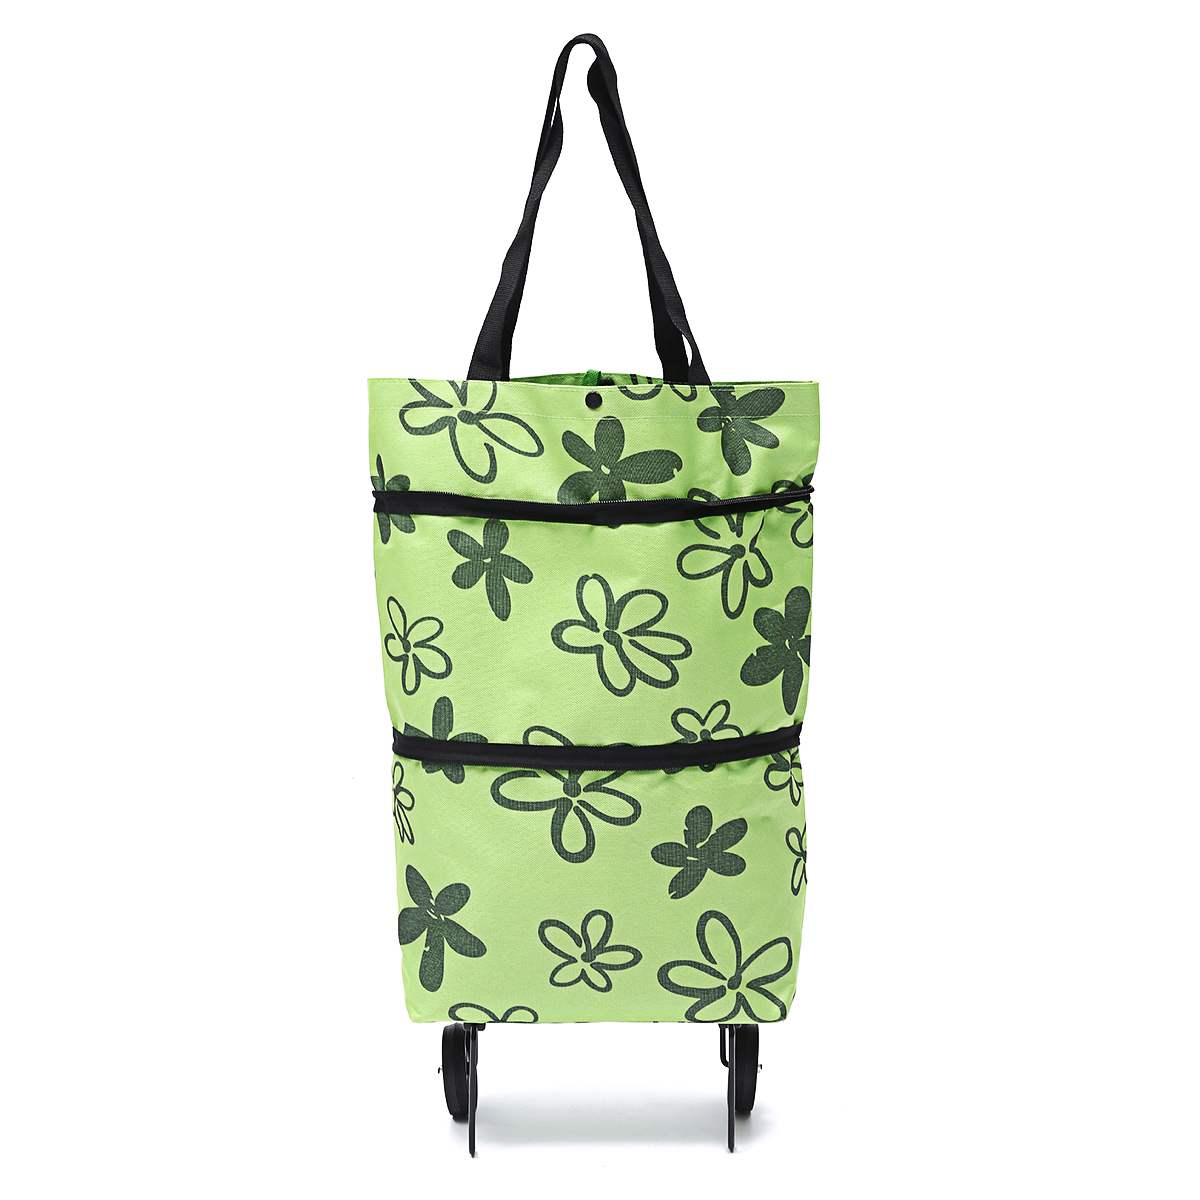 SHOPPING CART BAG TROLLEY 3 COLOURS FOLDING BAG 2 WHEELS EASY MARKETS OUTDOORS